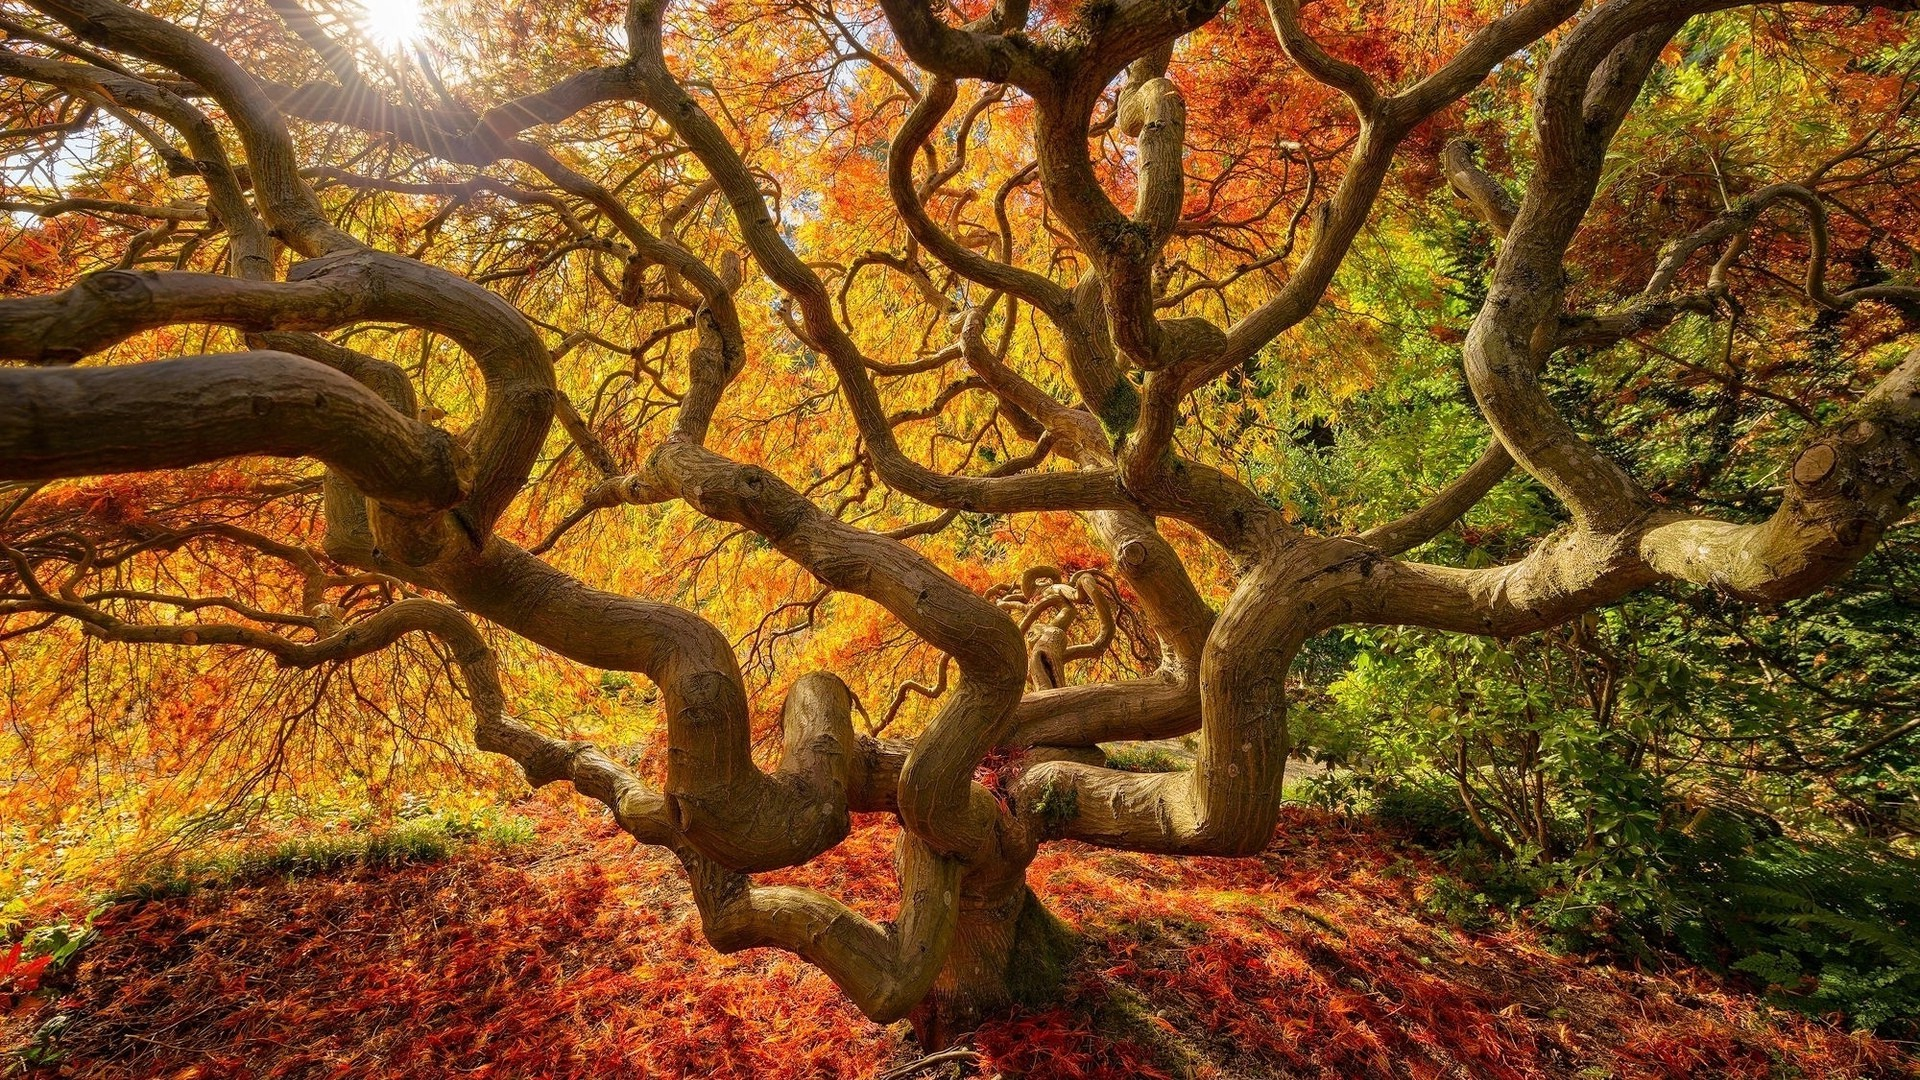 nature, Landscape, Trees, Fall, Japanese, Branch, Sun, Colorful, Leaves  Wallpapers HD / Desktop and Mobile Backgrounds